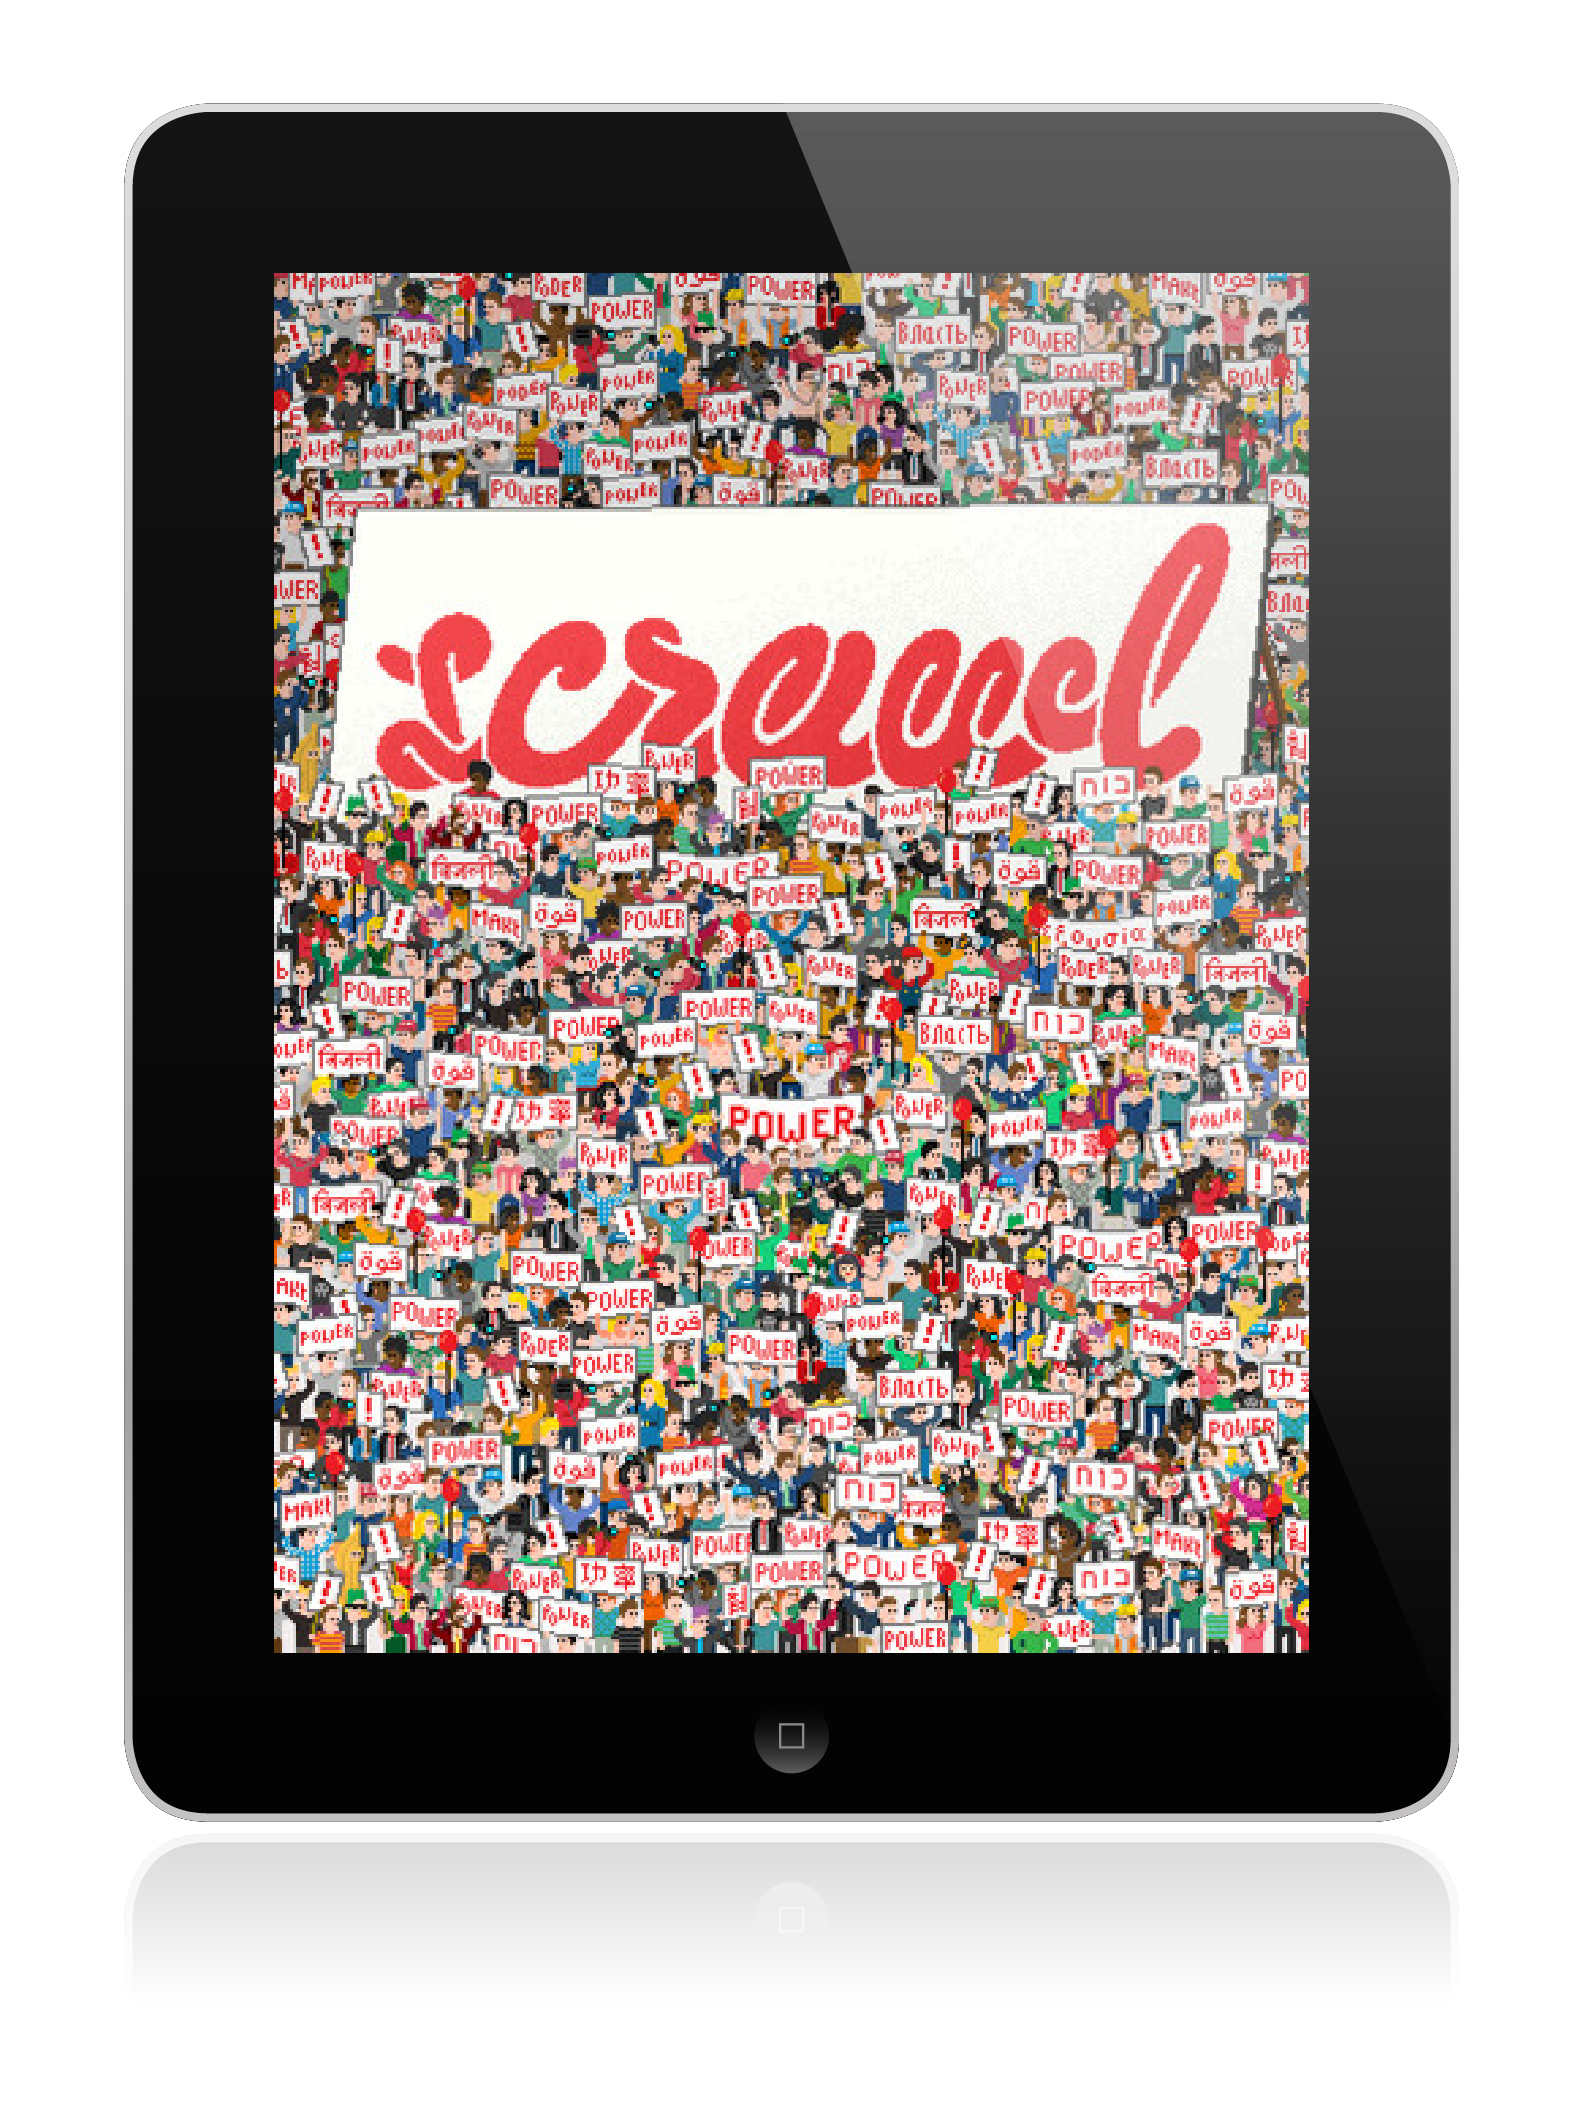 Scrawl-iPad-issue-made-on-magplus